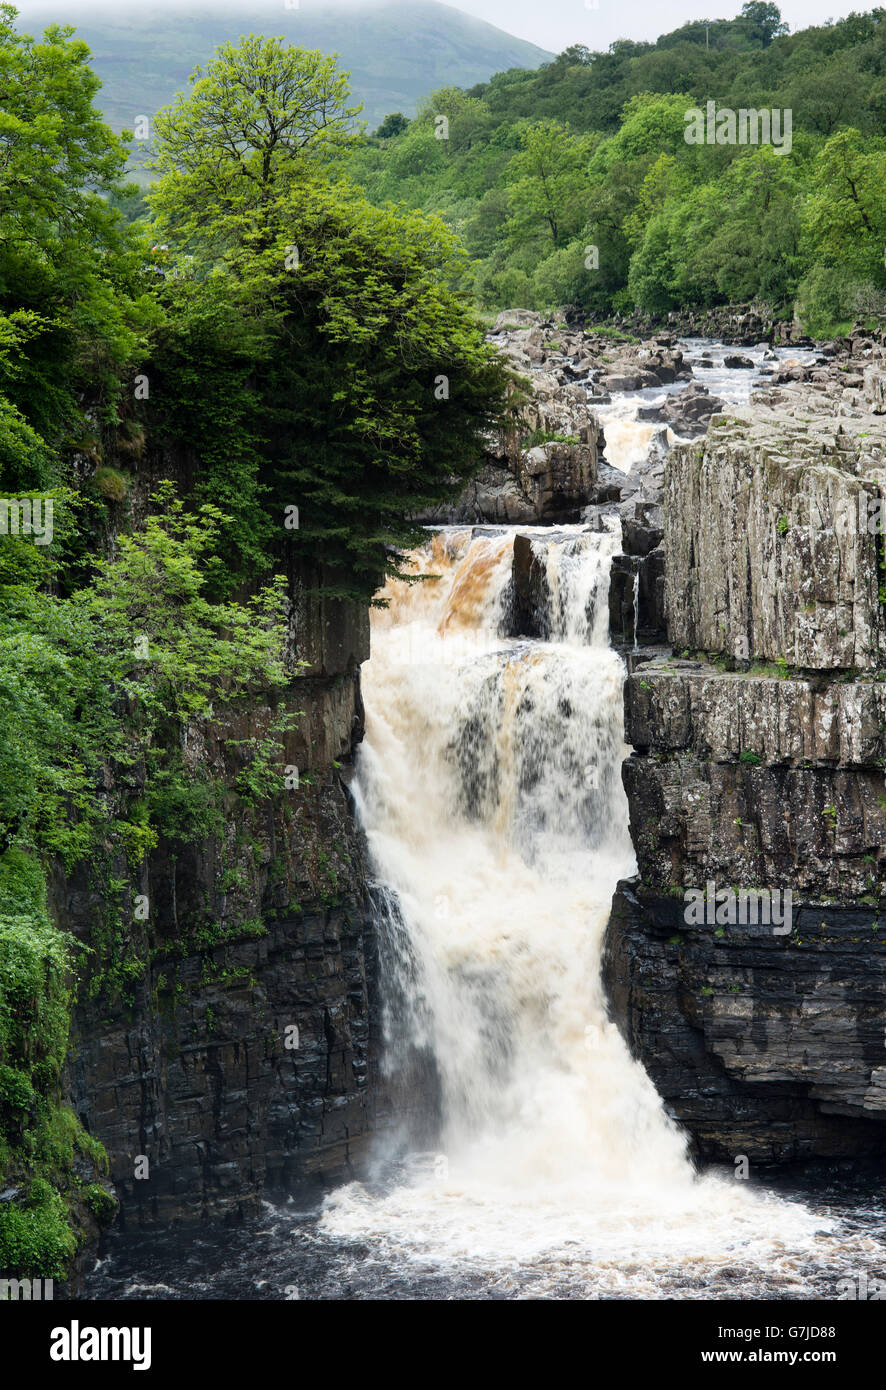 Summer rainfall plunging over the Great Whin Sill, High Force, Teesdale, County Durham, England, UK - Stock Image